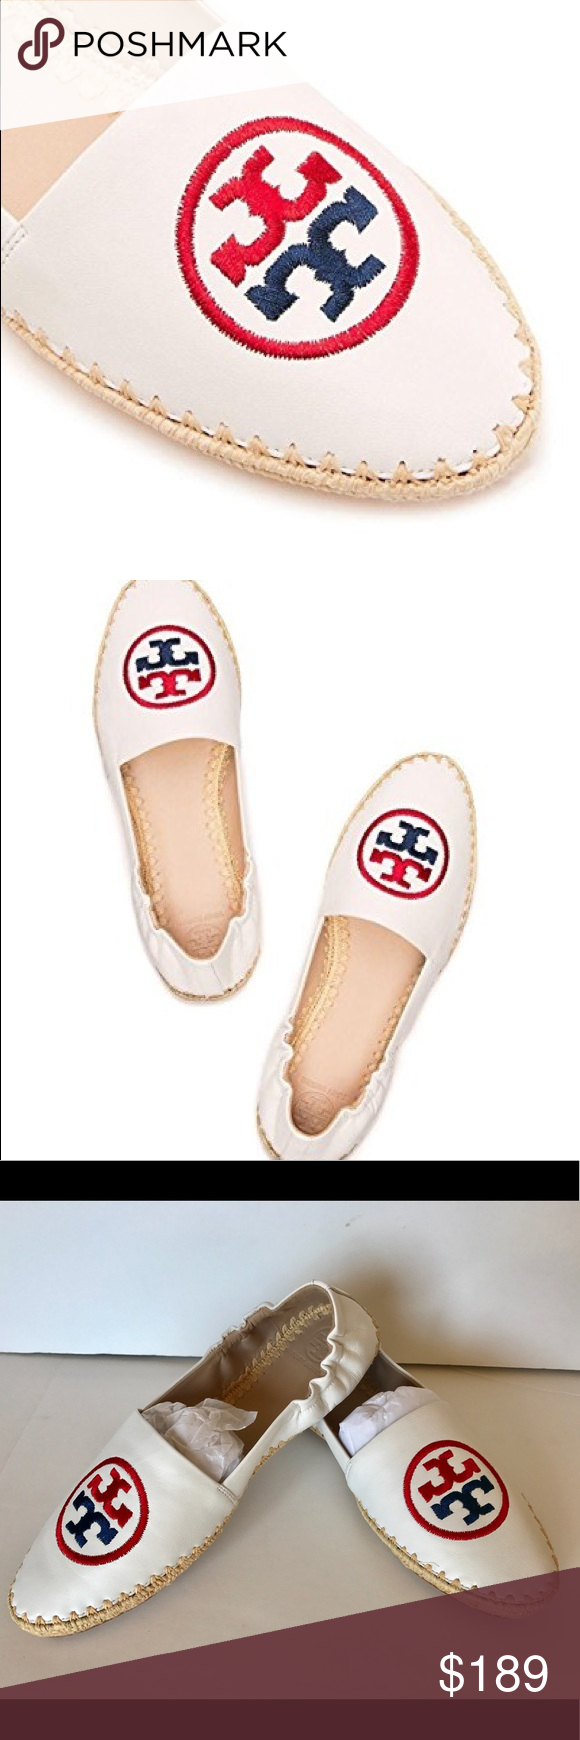 9e1e8537d0b tory burch darien loafer shoes Think of our Darien Loafer as the perfect  hybrid style —